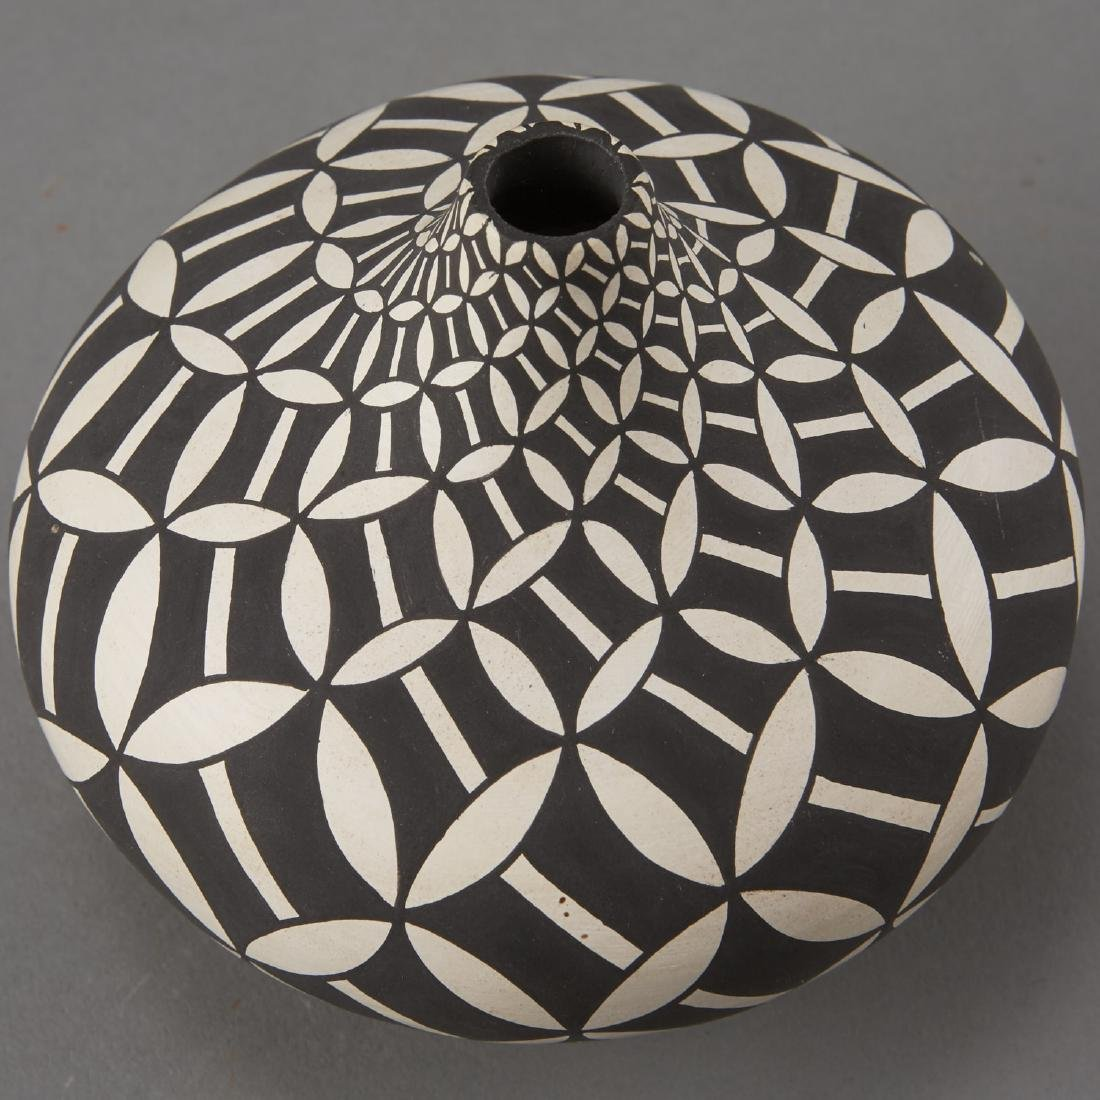 Group of 8 Acoma Pueblo Pottery - 6